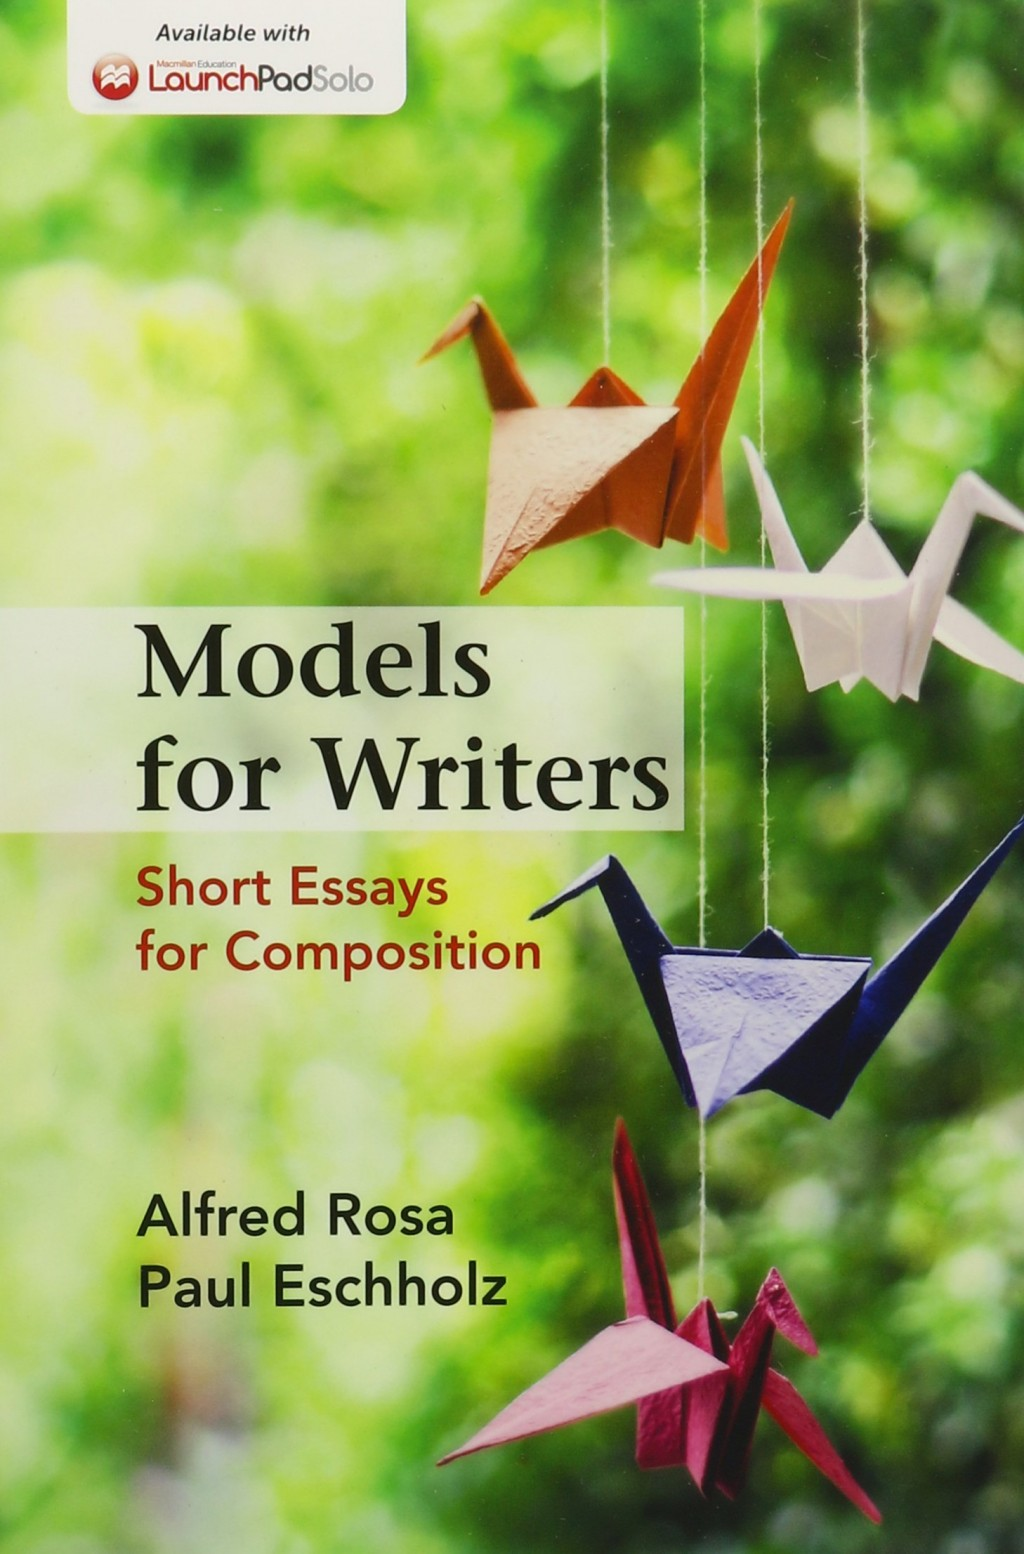 001 81truyjdqfl Models For Writers Short Essays Composition Essay Singular 12th Edition 13th Pdf Large